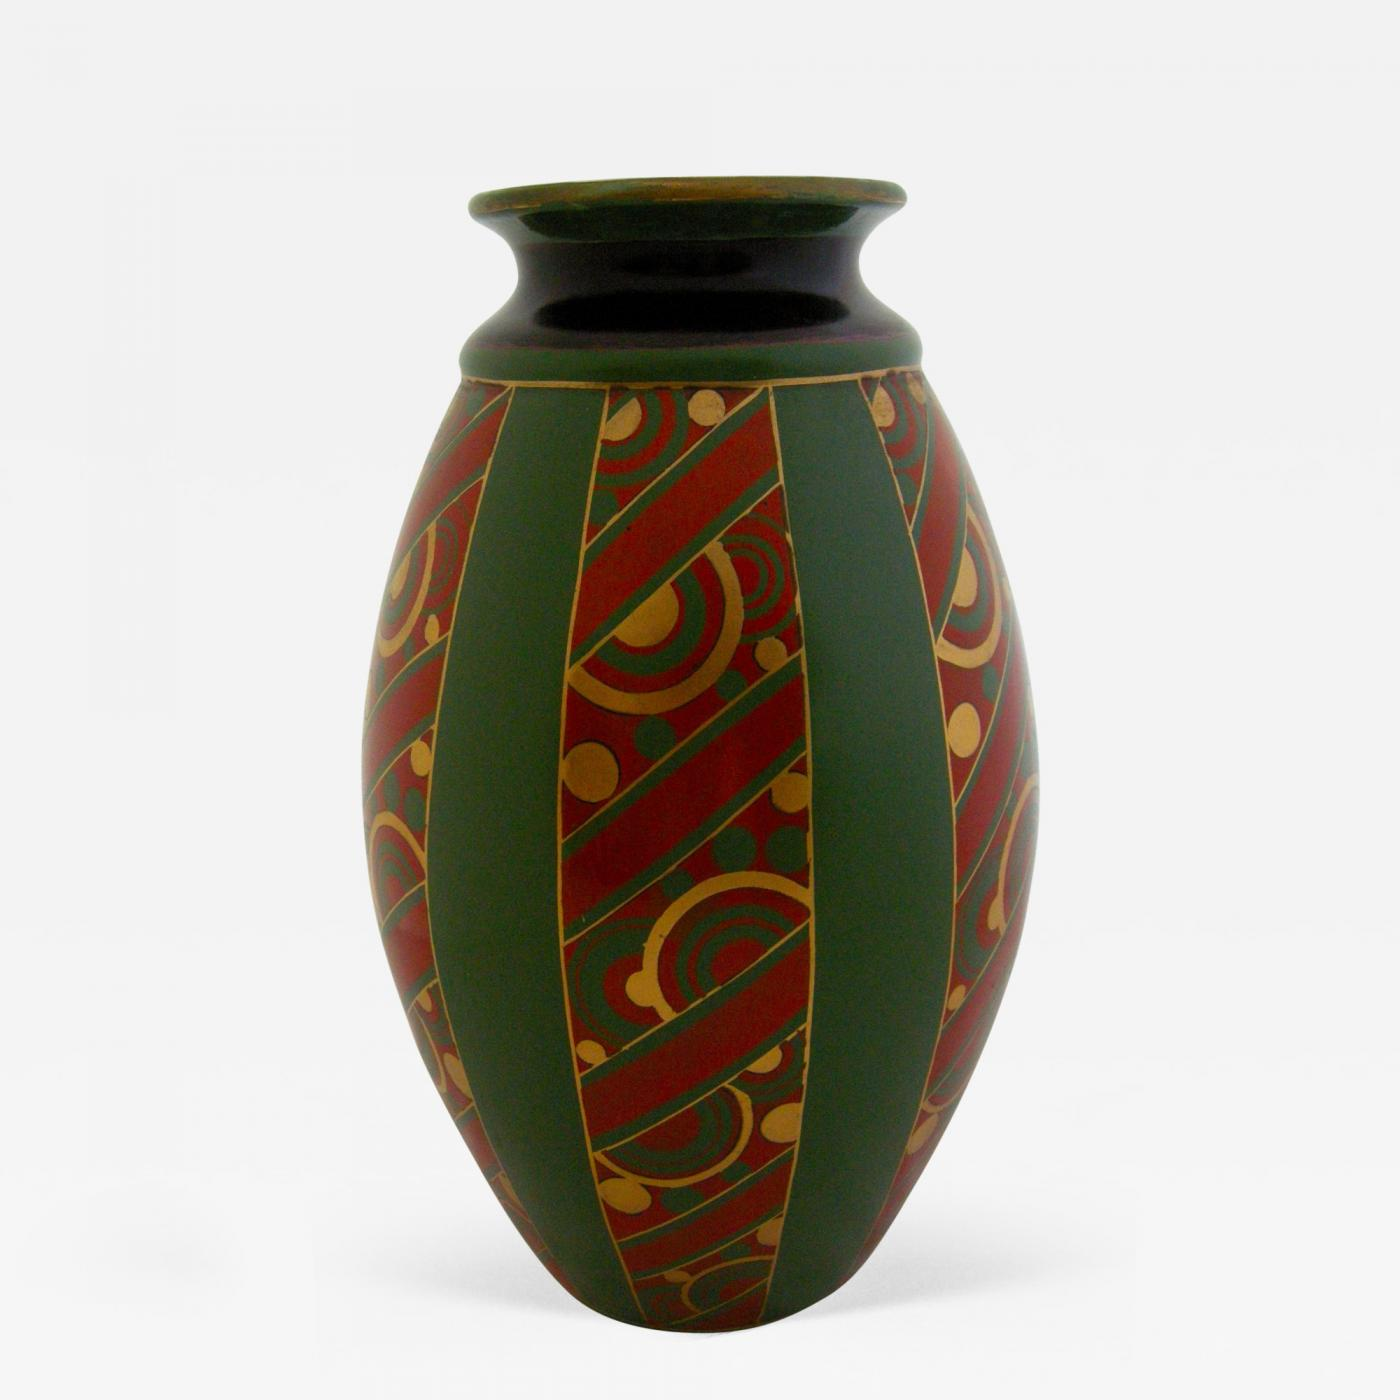 Emile lombart monumental faience art deco vase by emile lombart listings decorative arts objects vases jars urns floridaeventfo Image collections